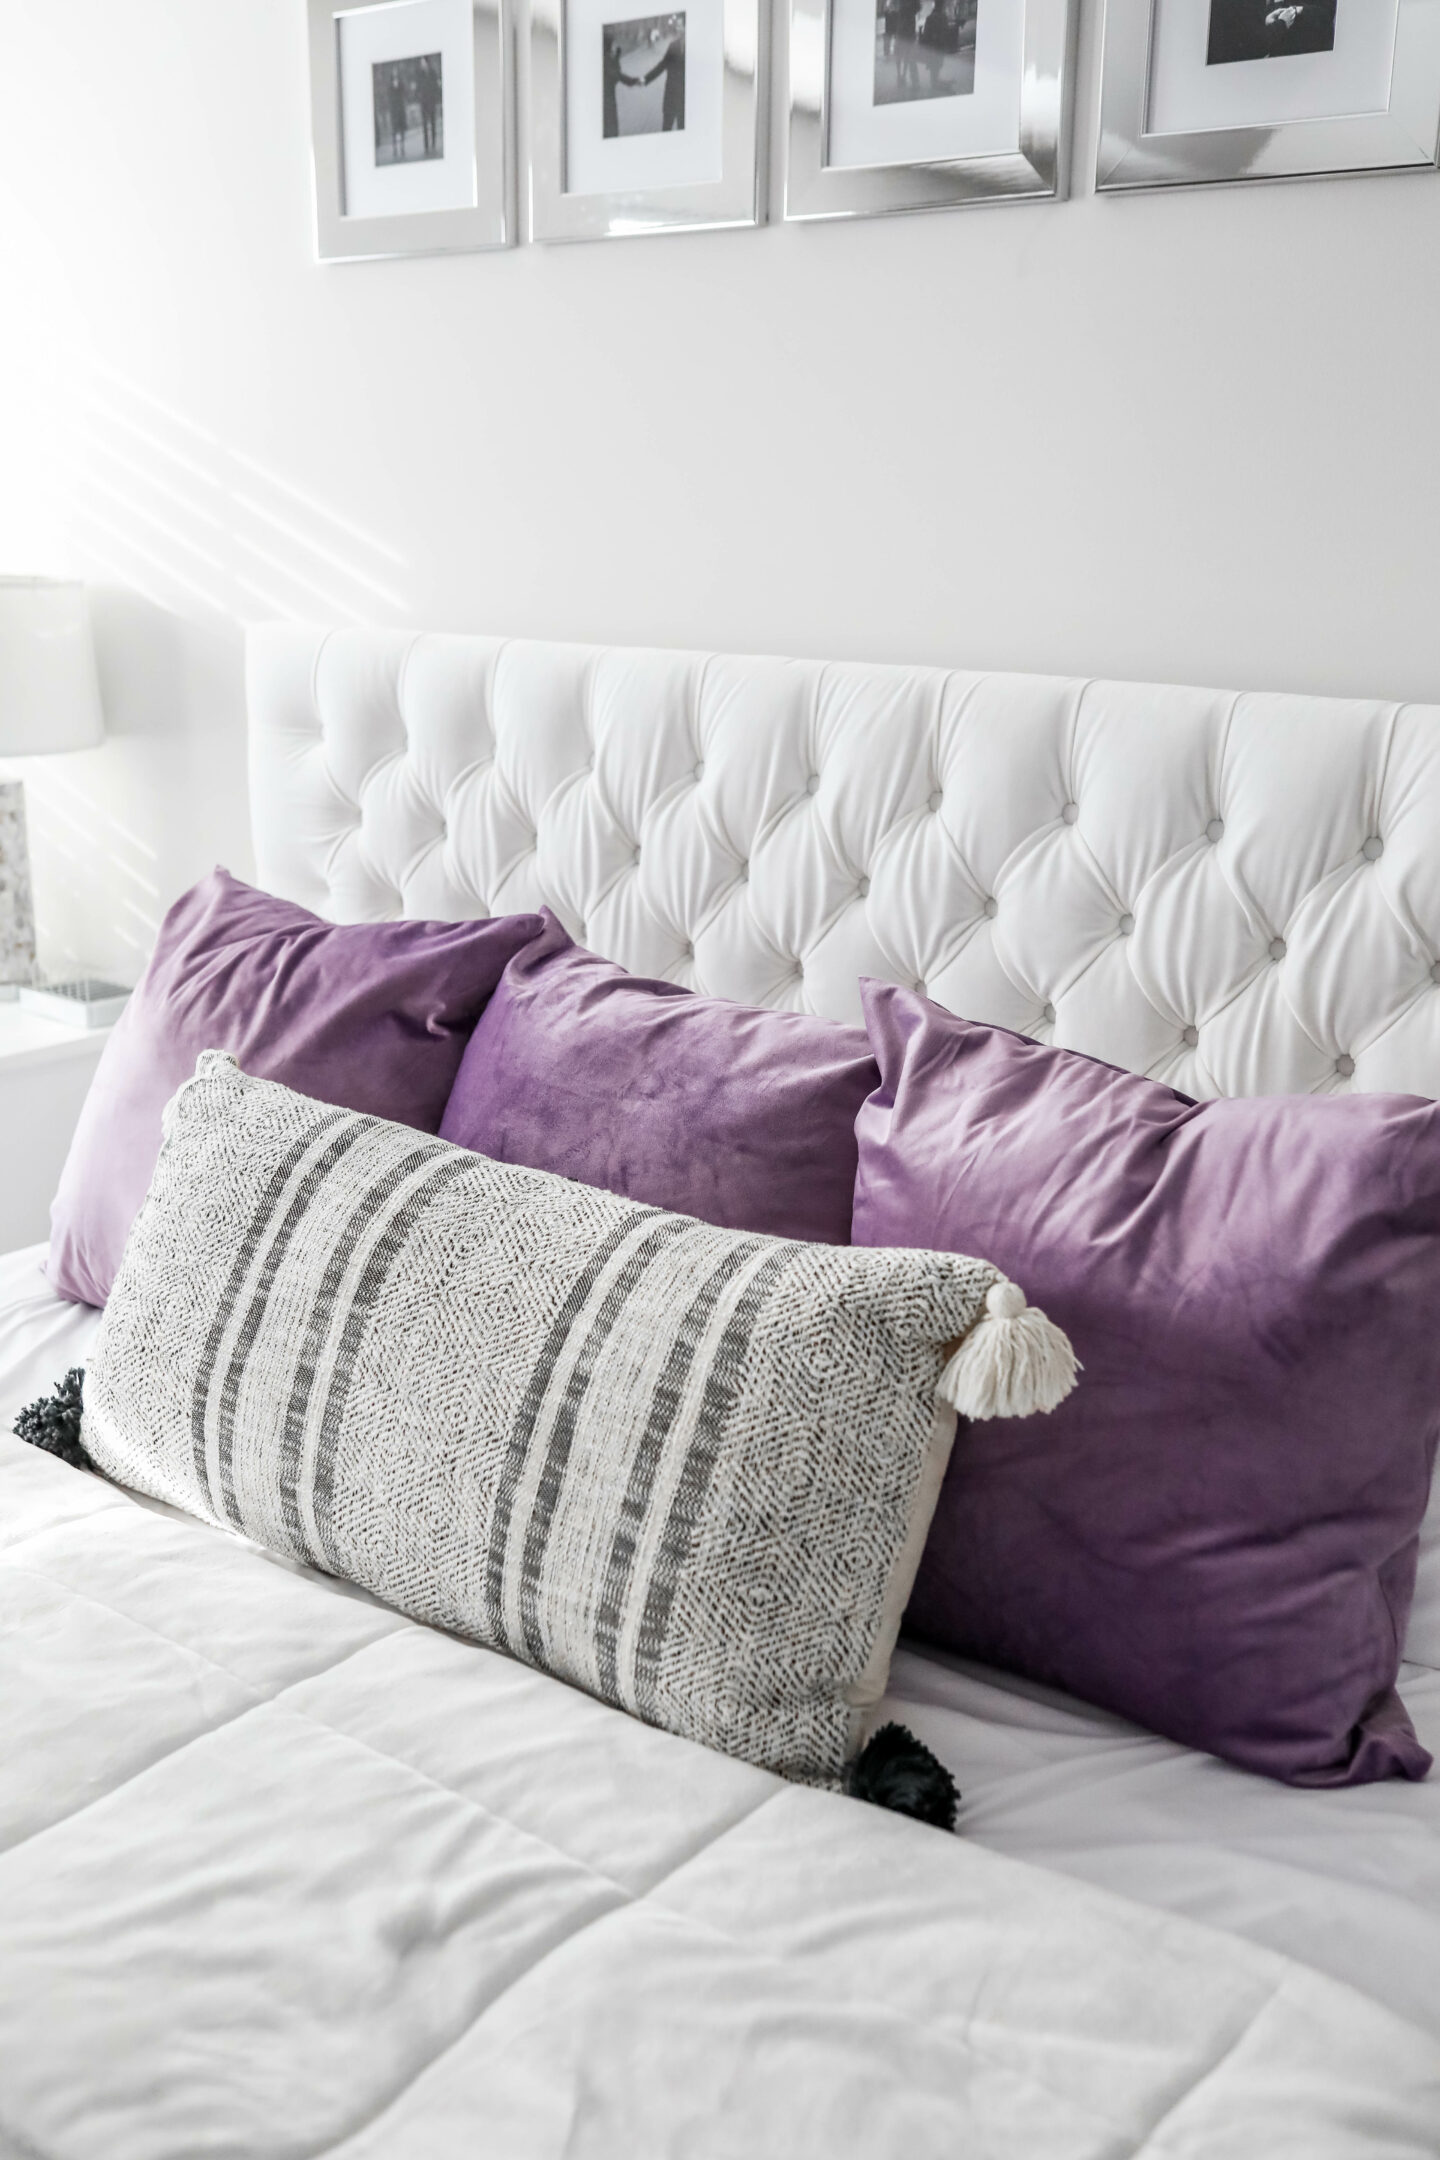 King bed pillows on Coming Up Roses